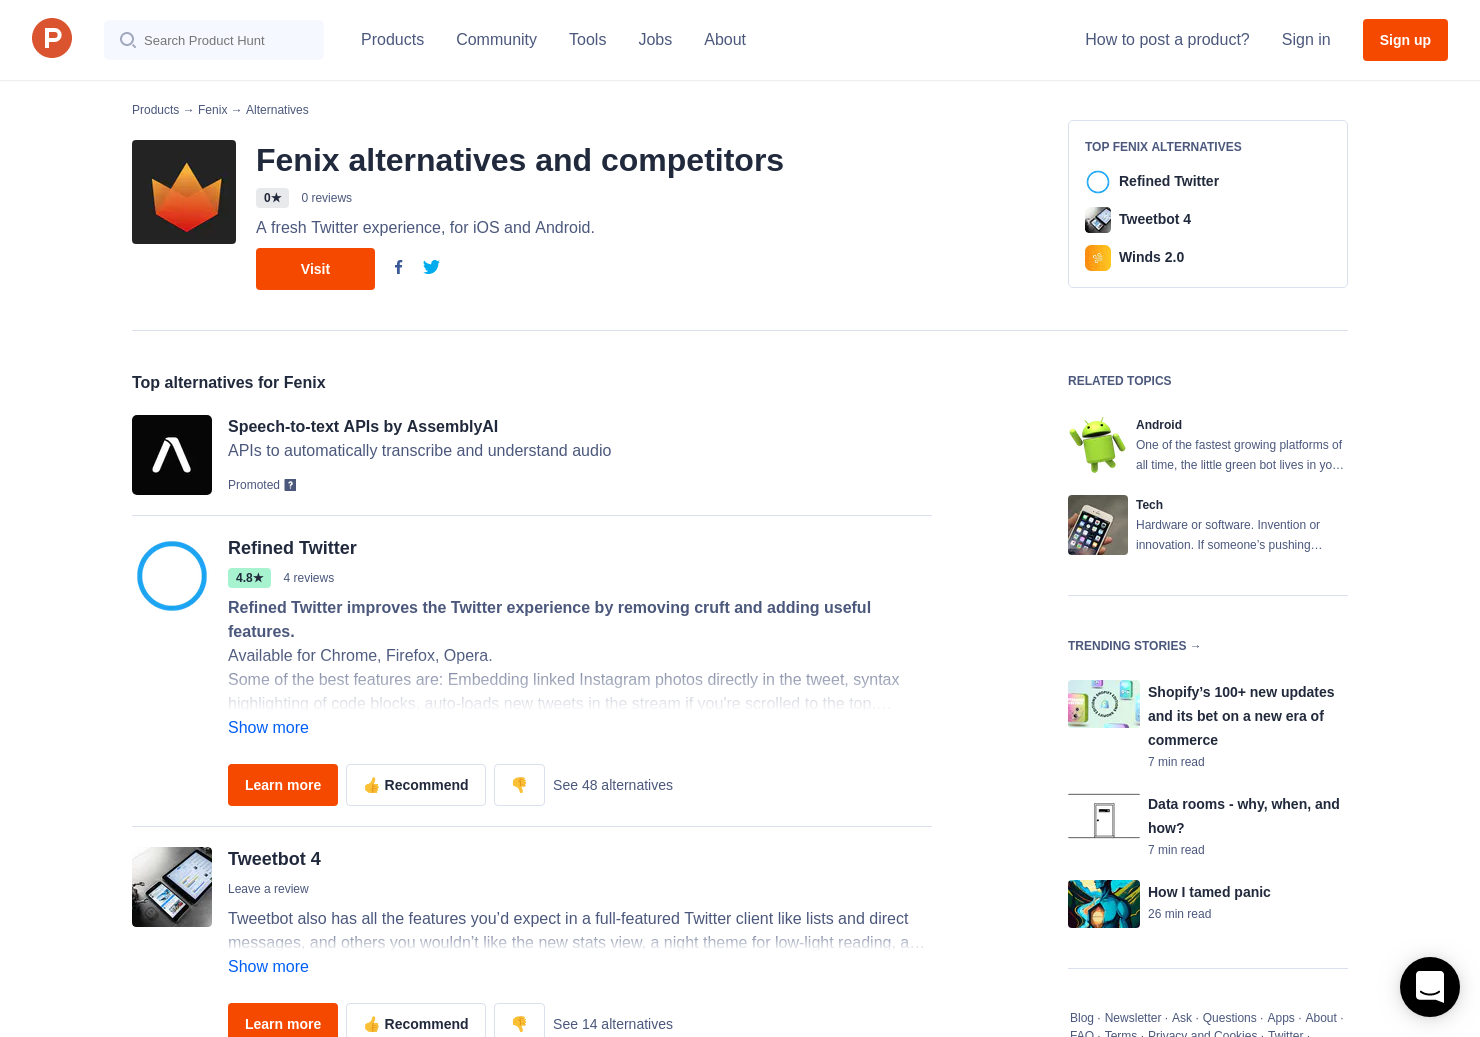 12 Alternatives to Fenix for Twitter for Android | Product Hunt